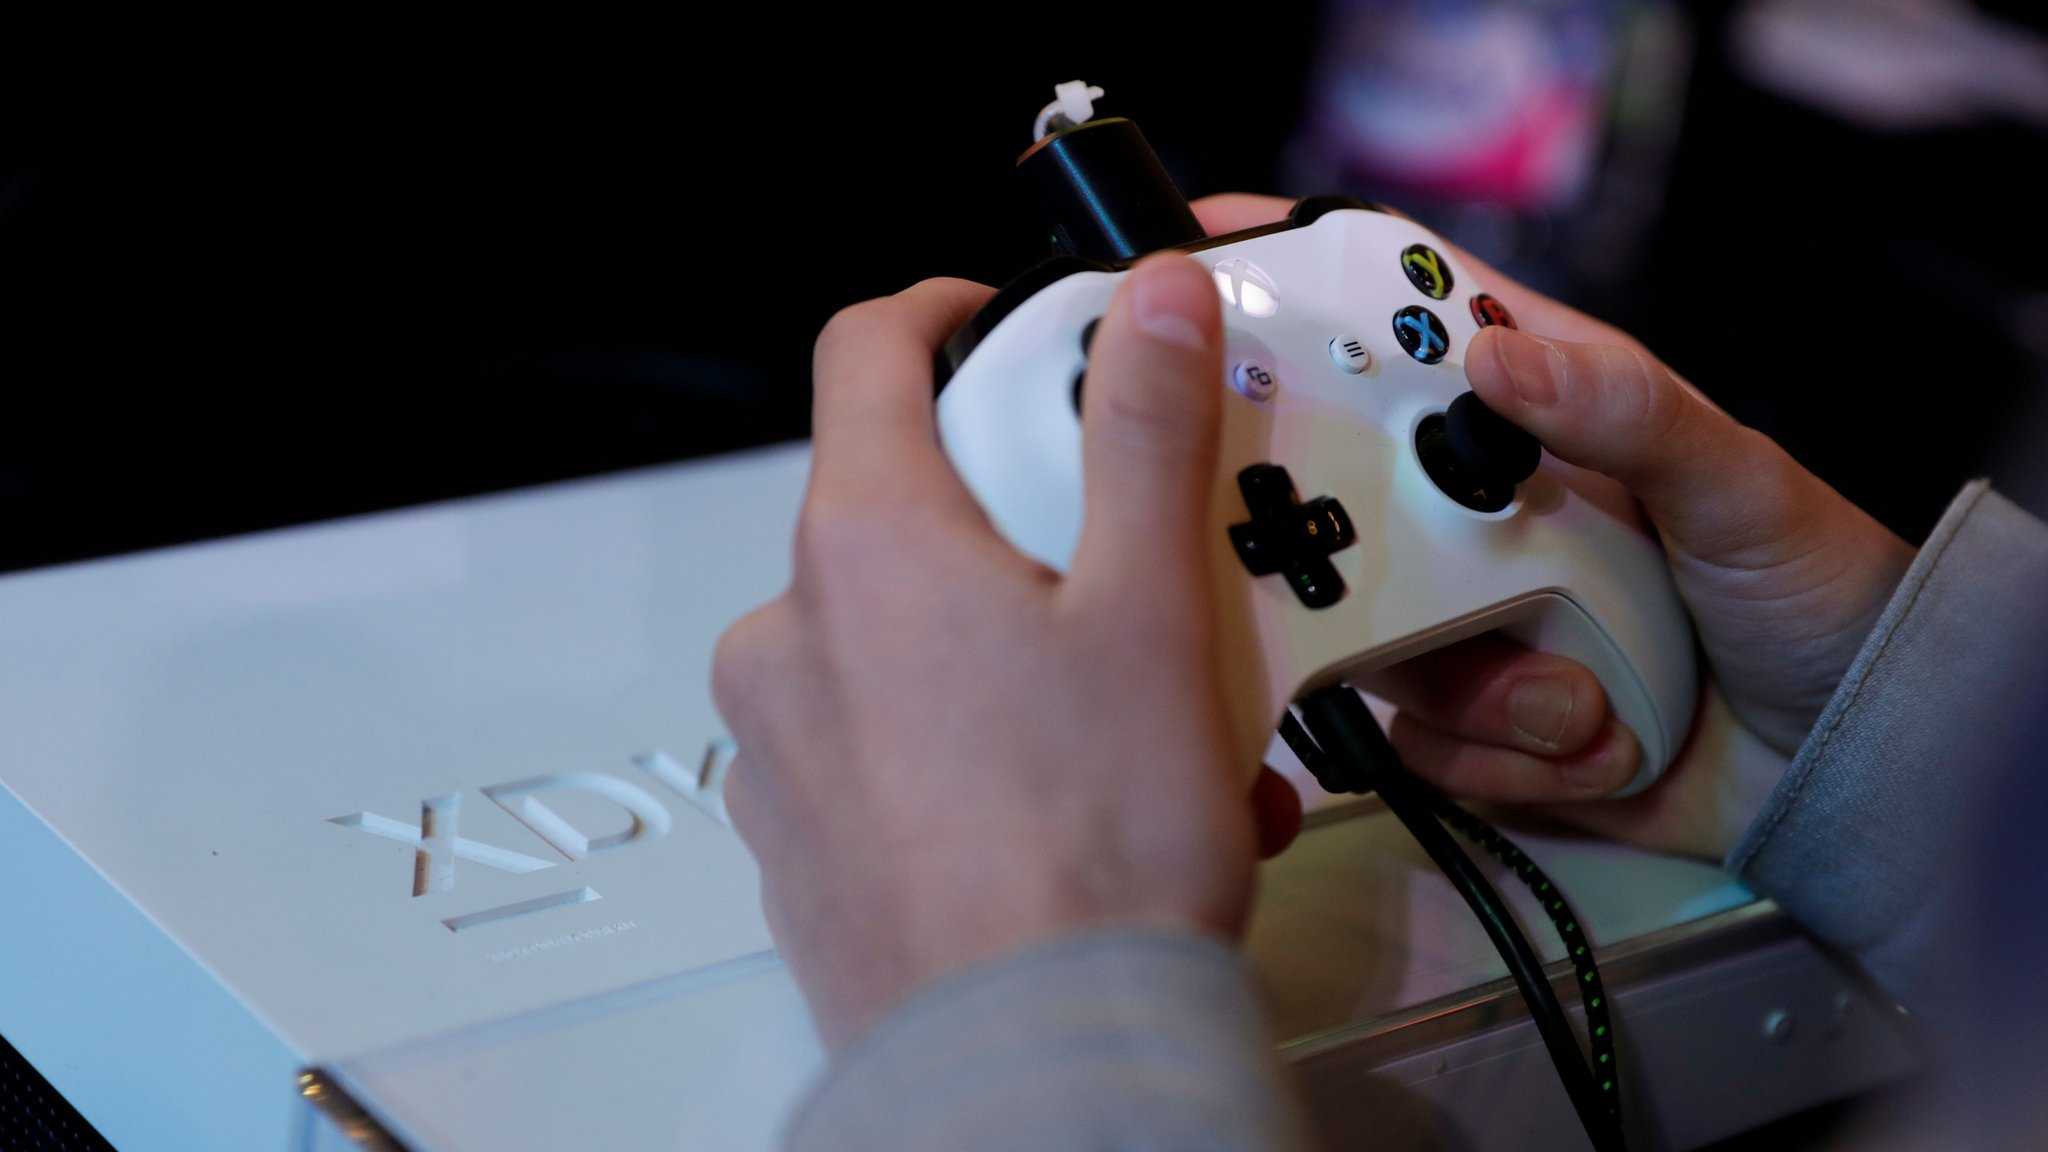 WHO: Gaming addiction 'a mental health condition'